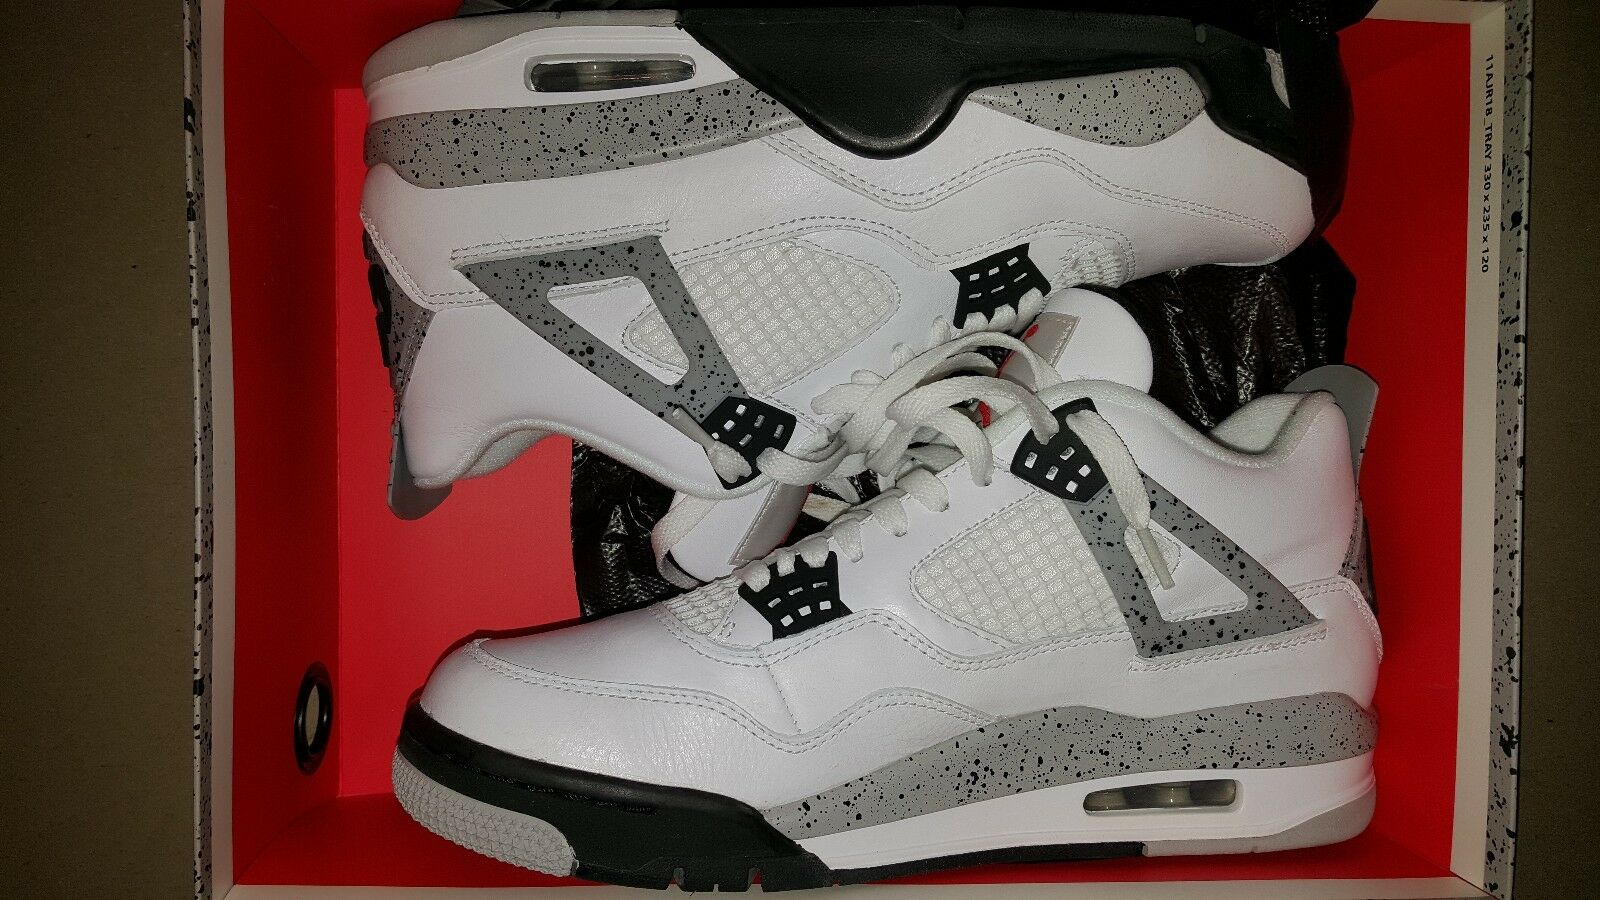 Nike Air Jordan 4 IV Retro OG White Cement 2018 840606-192 SIZE 9.5! USED! The latest discount shoes for men and women